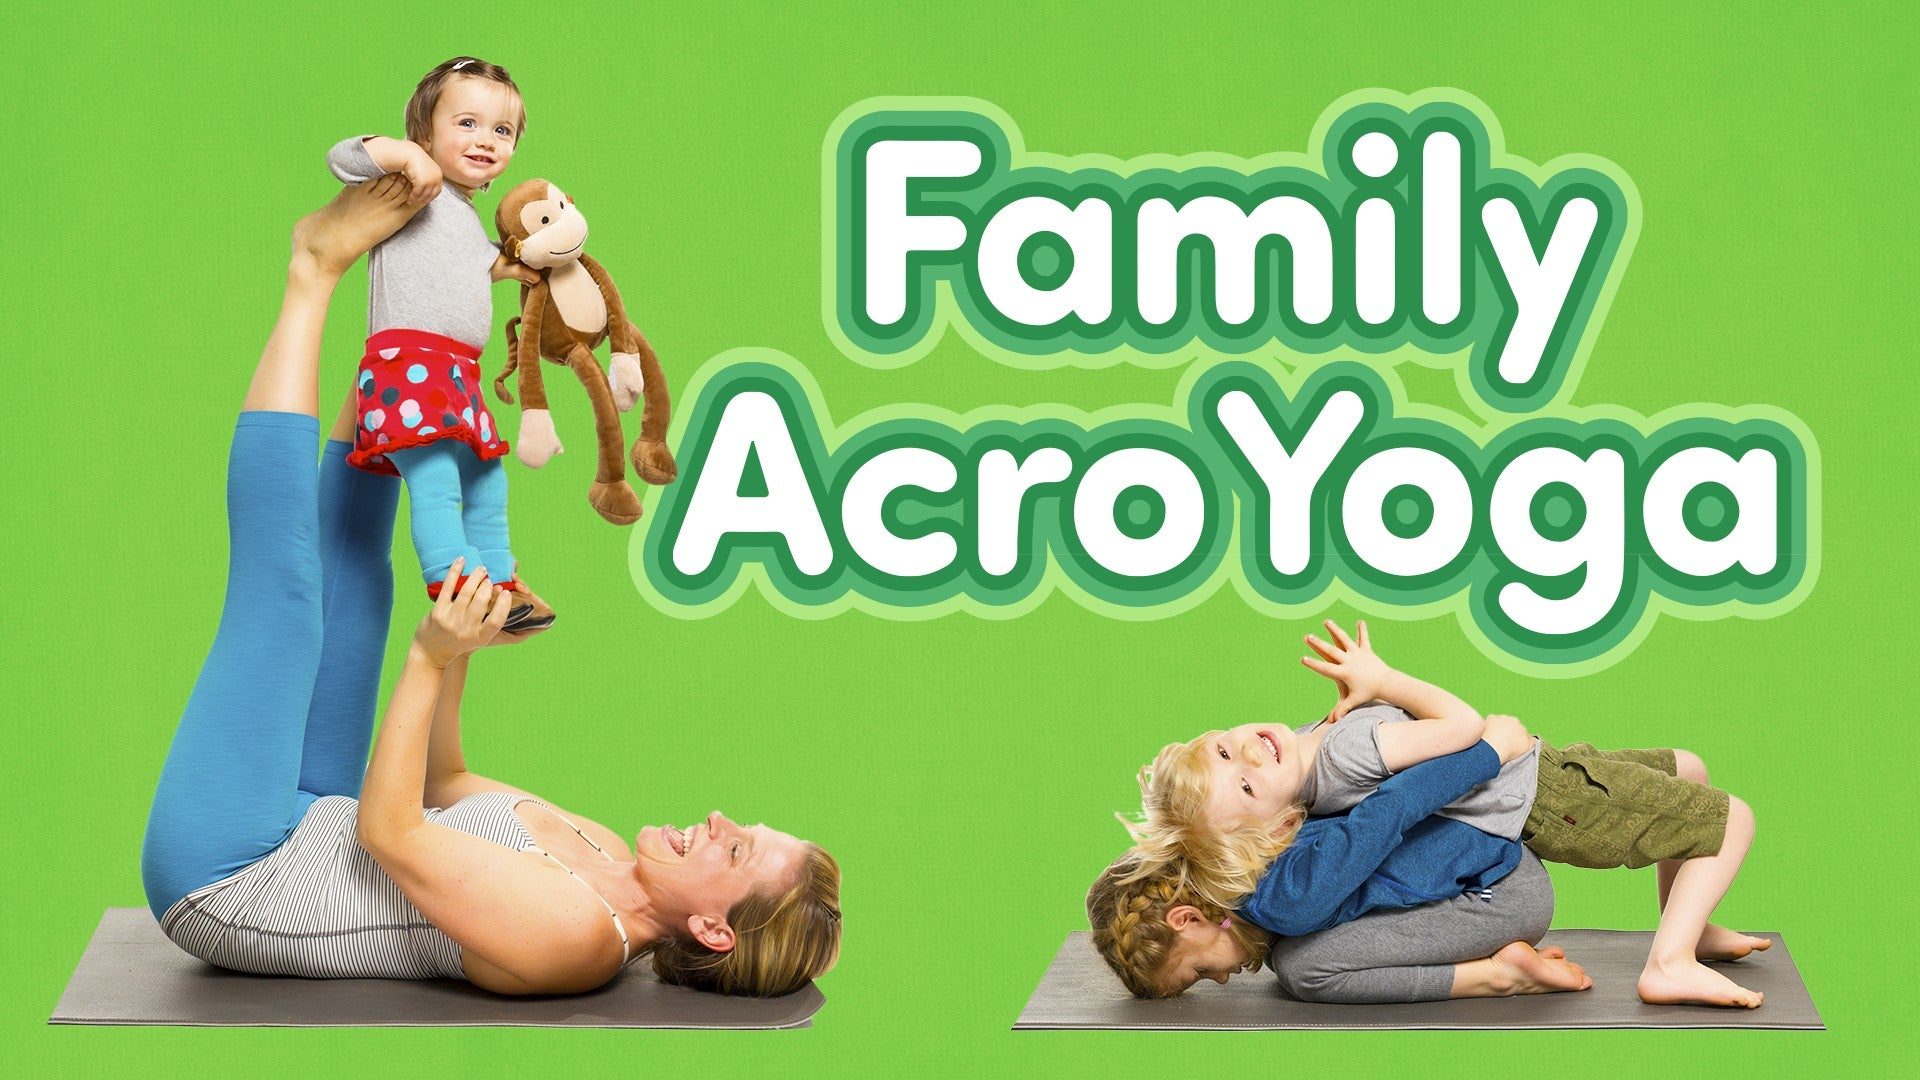 Family AcroYoga Artwork